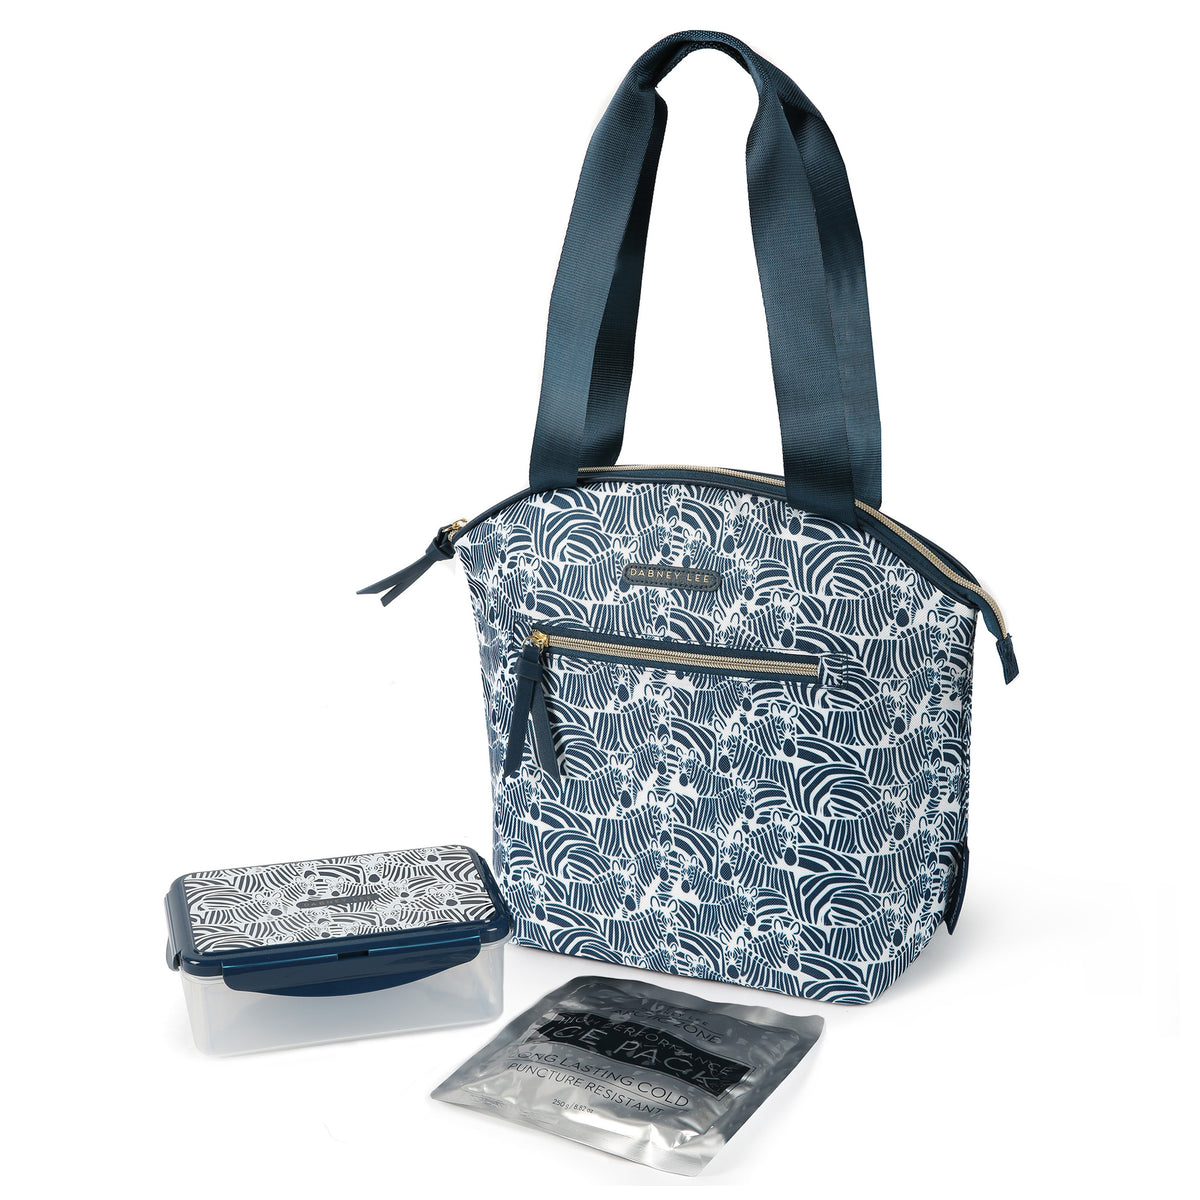 Arctic Zone® Dabney Lee Soft Tote - Bruno - Closed, with container and ice pack